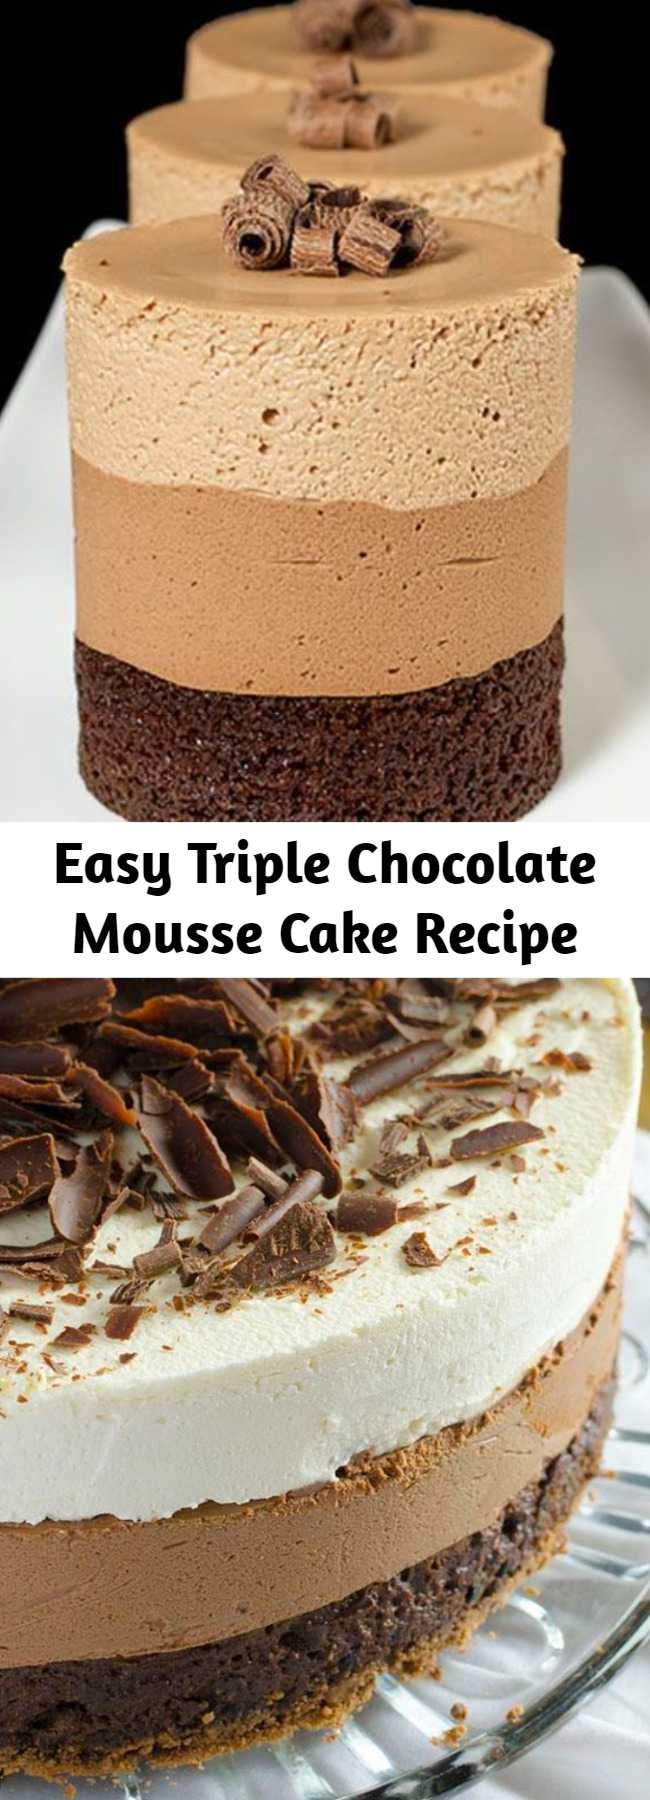 Easy Triple Chocolate Mousse Cake Recipe - What if your chocolate cake has three chocolate layers instead of one? Then, we are talking about one of the most decadent chocolate cakes – Triple Chocolate Mousse Cake.